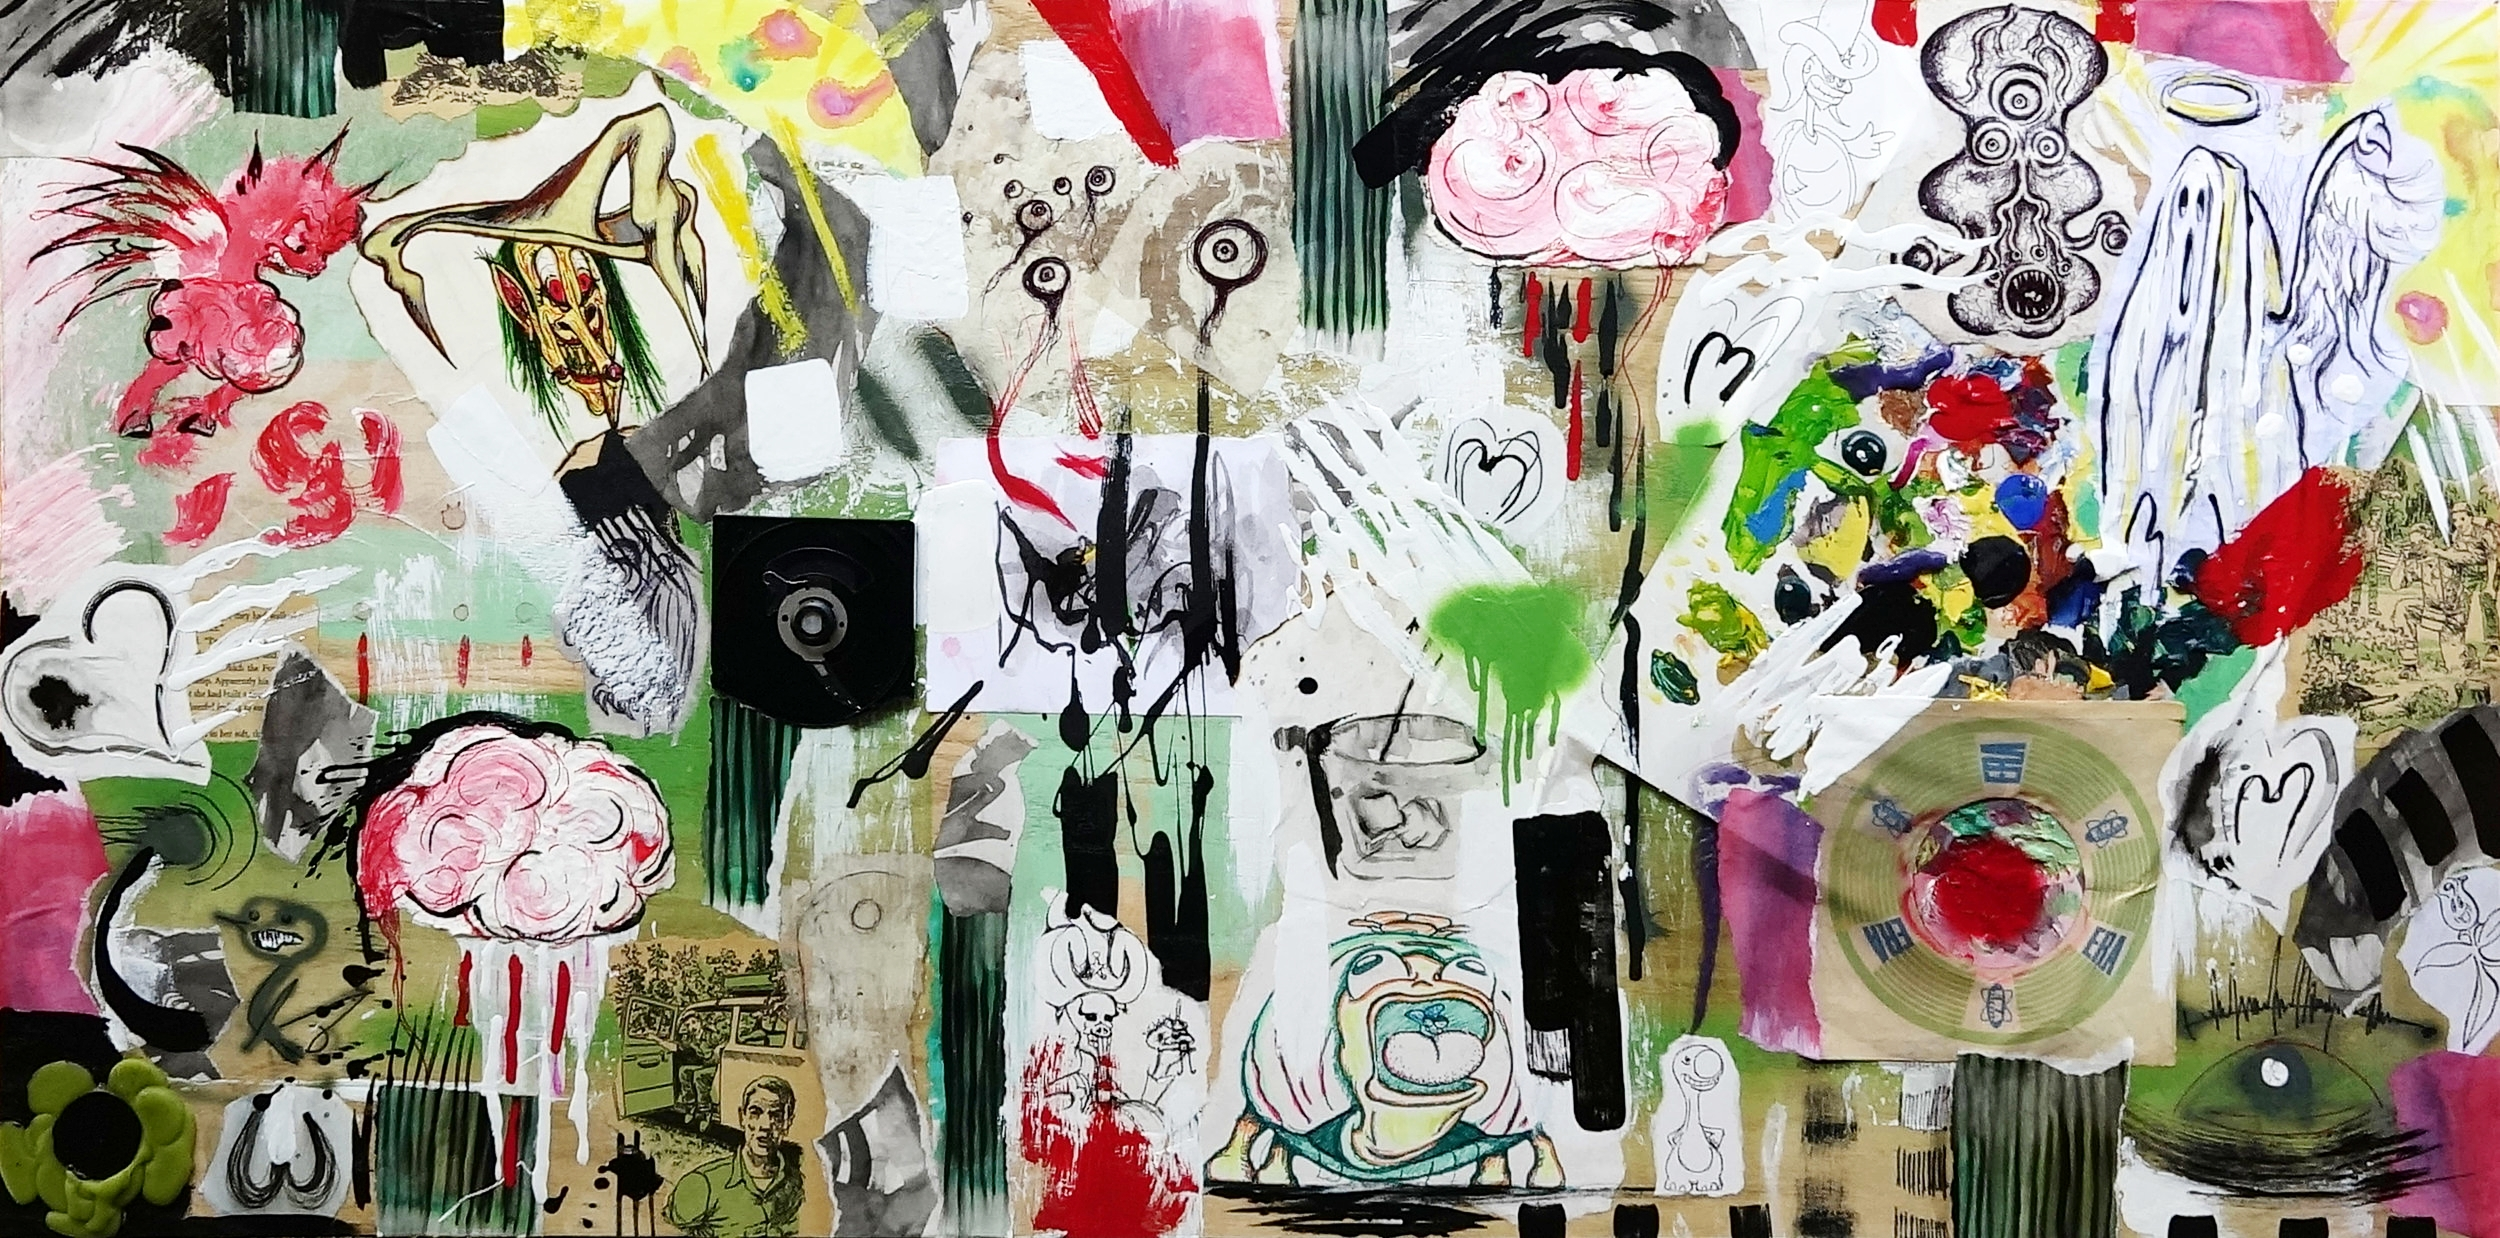 BRAIN RAIN. 48x25. Mixed Media on wood panel